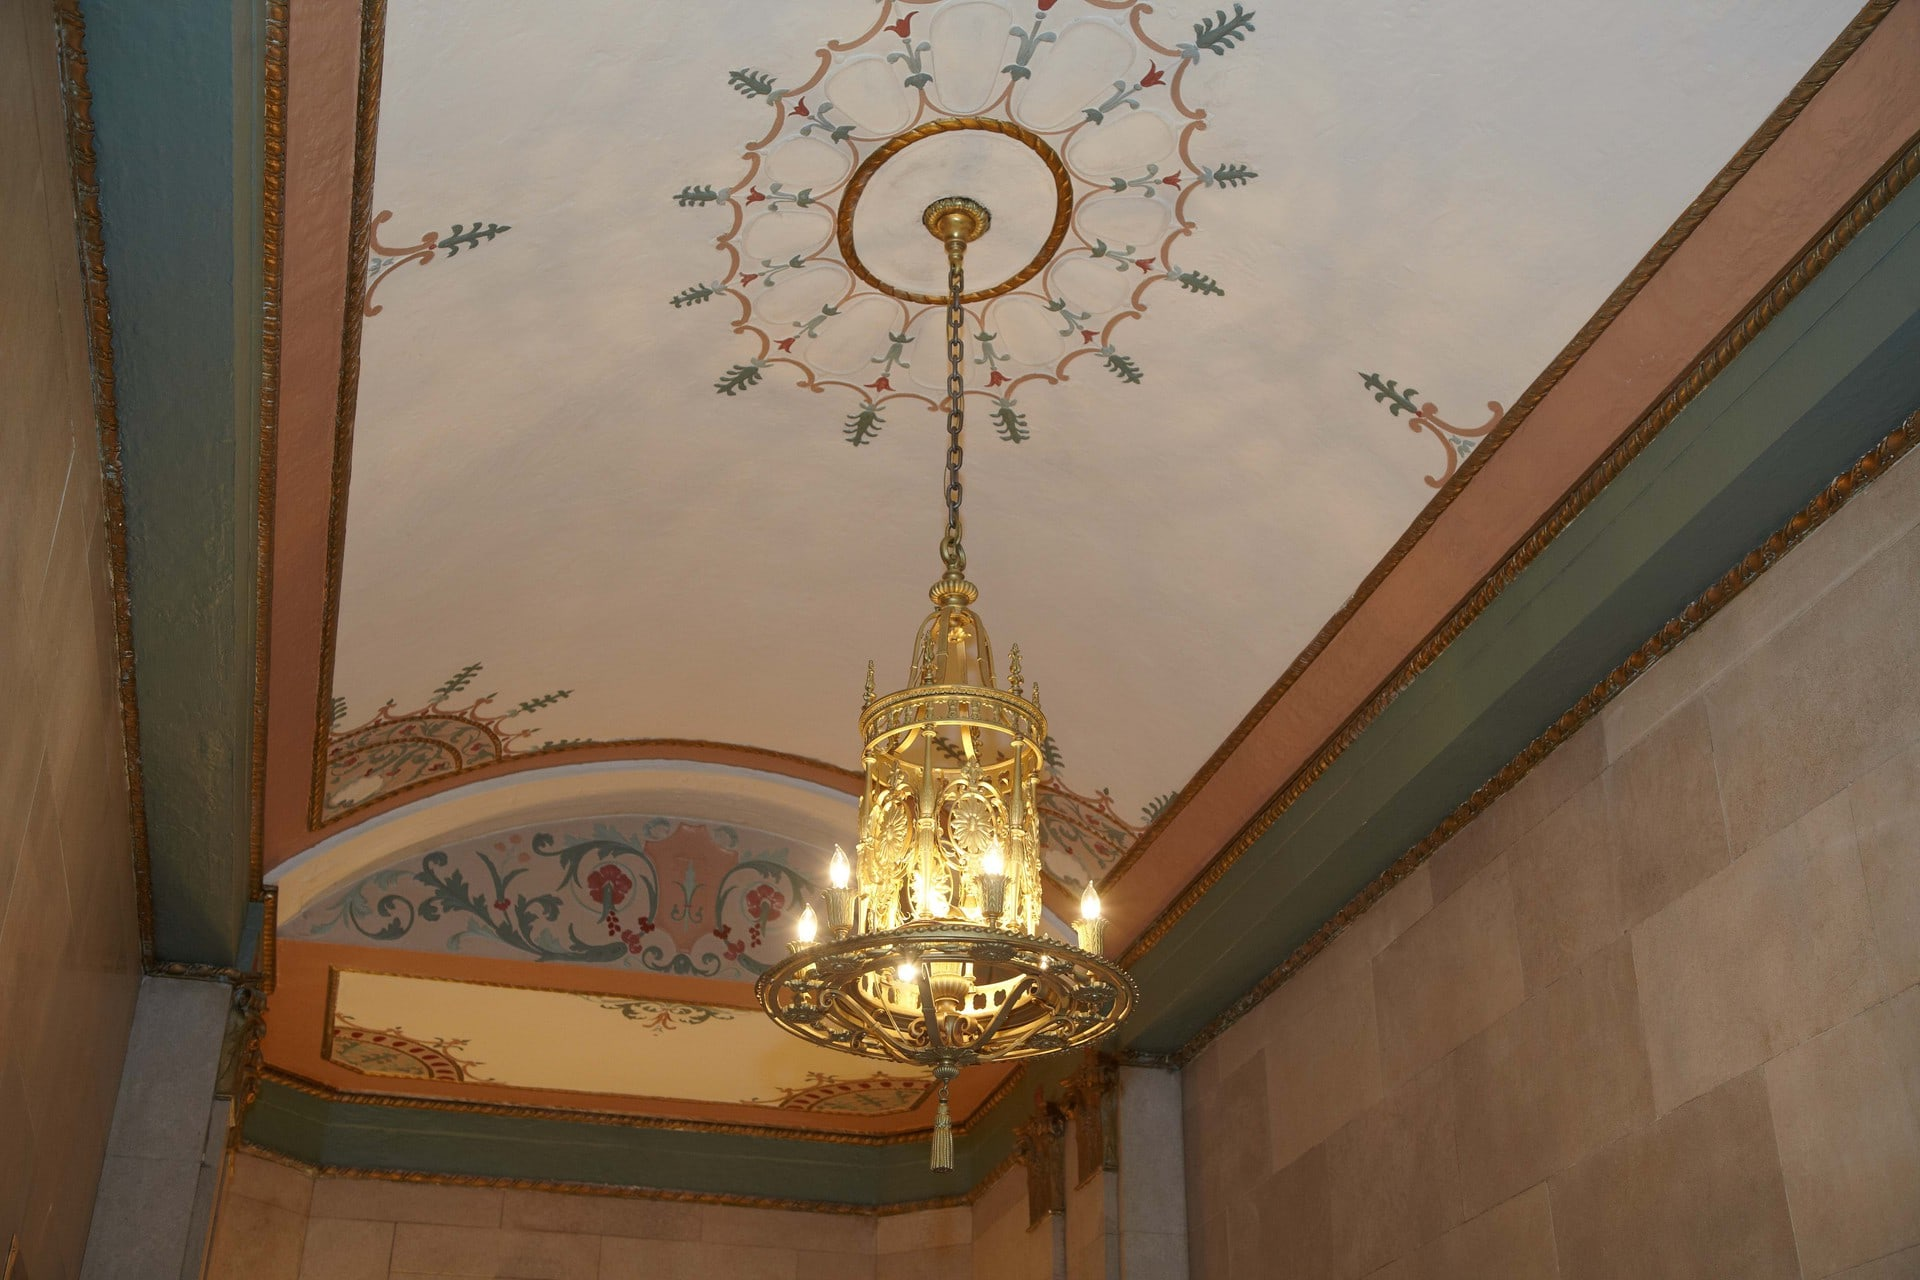 Detail of the Chandelier at The Union Building